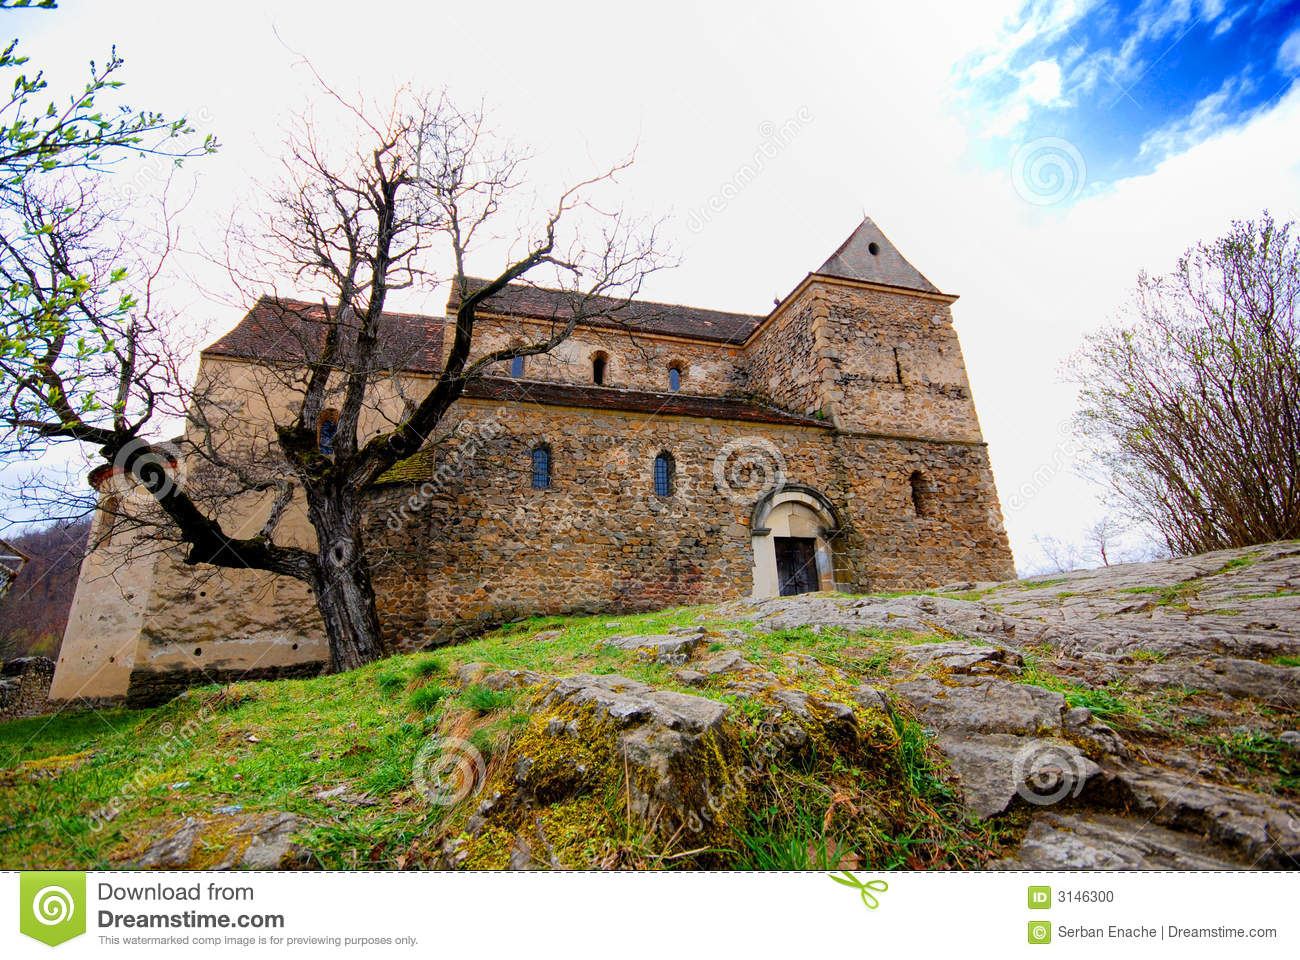 Chiesa di Romanesque in Romania